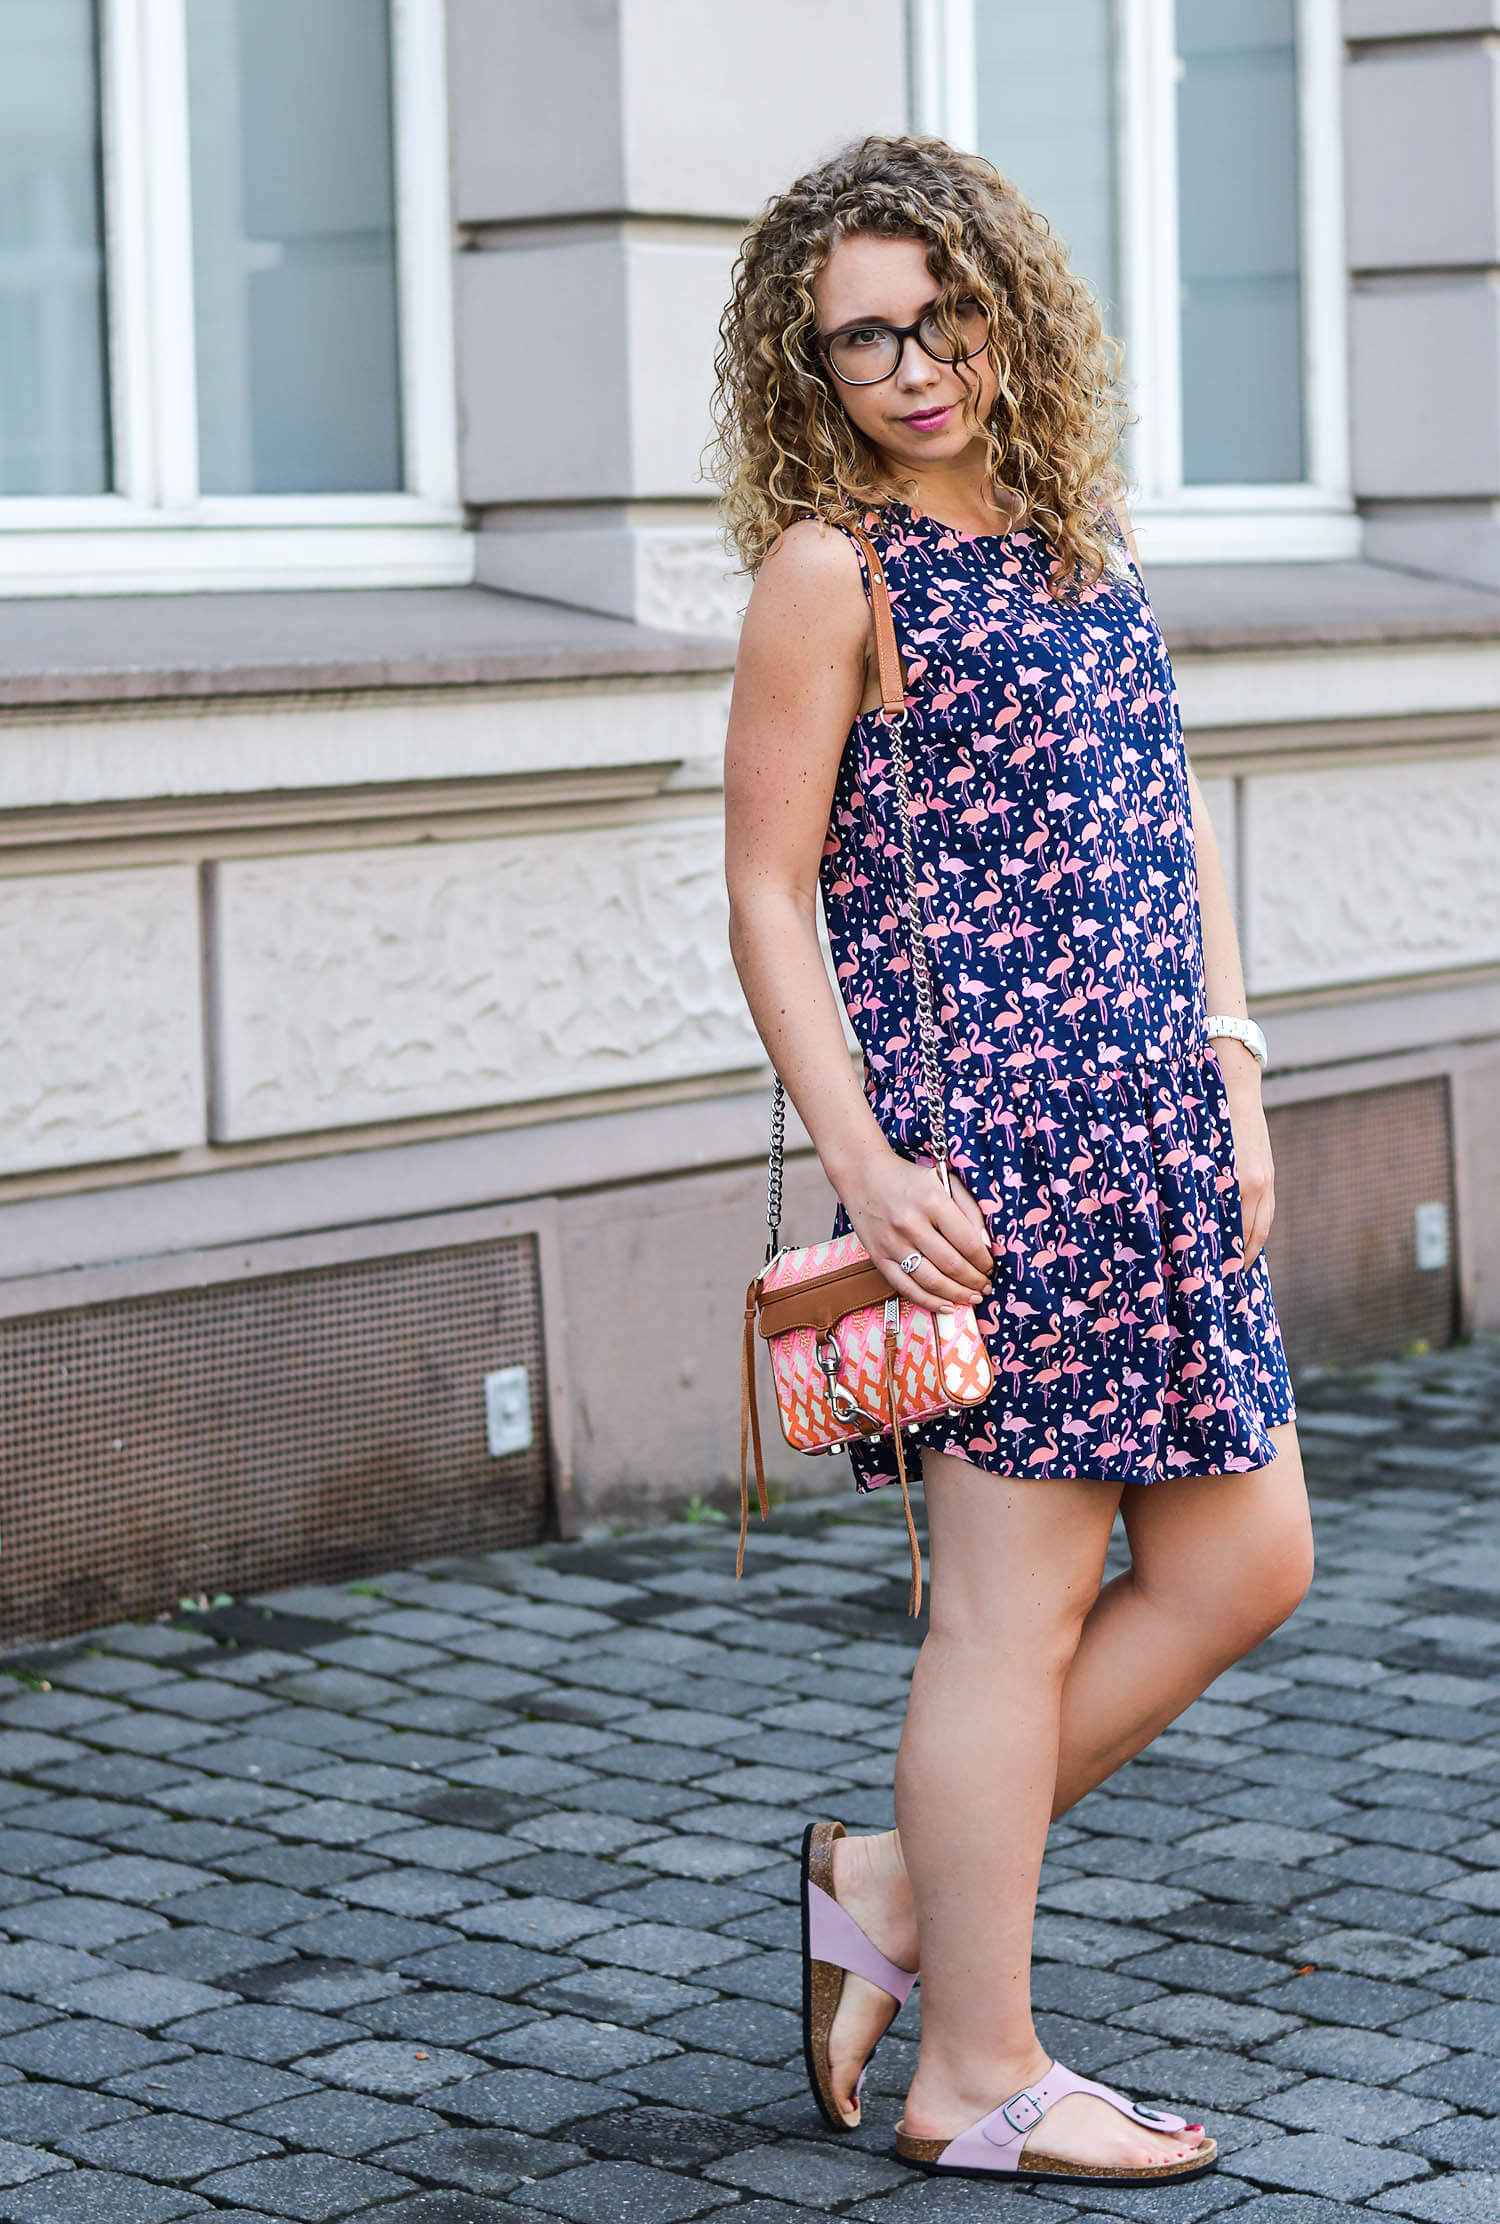 kationette-fashionblog-nrw-Outfit-Flamingo-Dress-Rebecca-Minkoff-Bag-Birkenstock